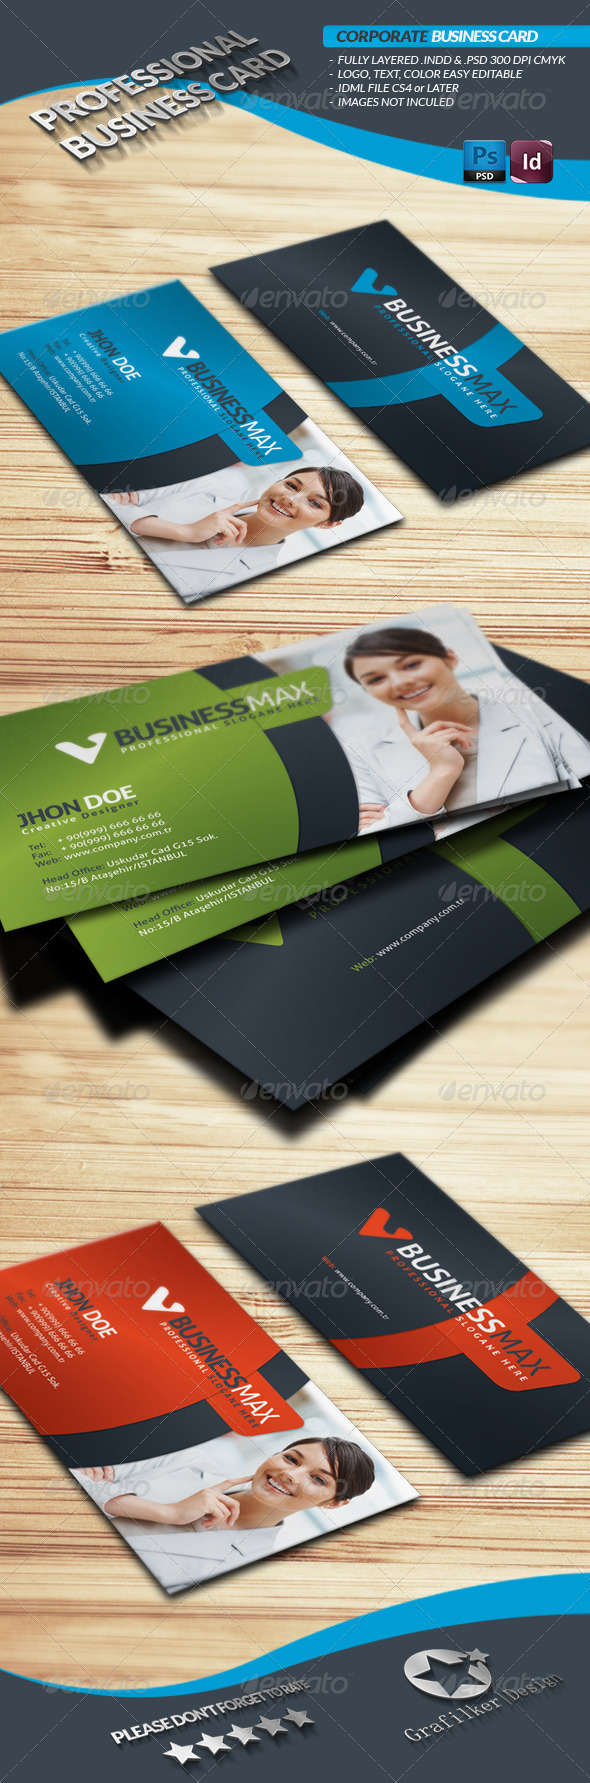 GraphicRiver Corporate Business Card 3866121